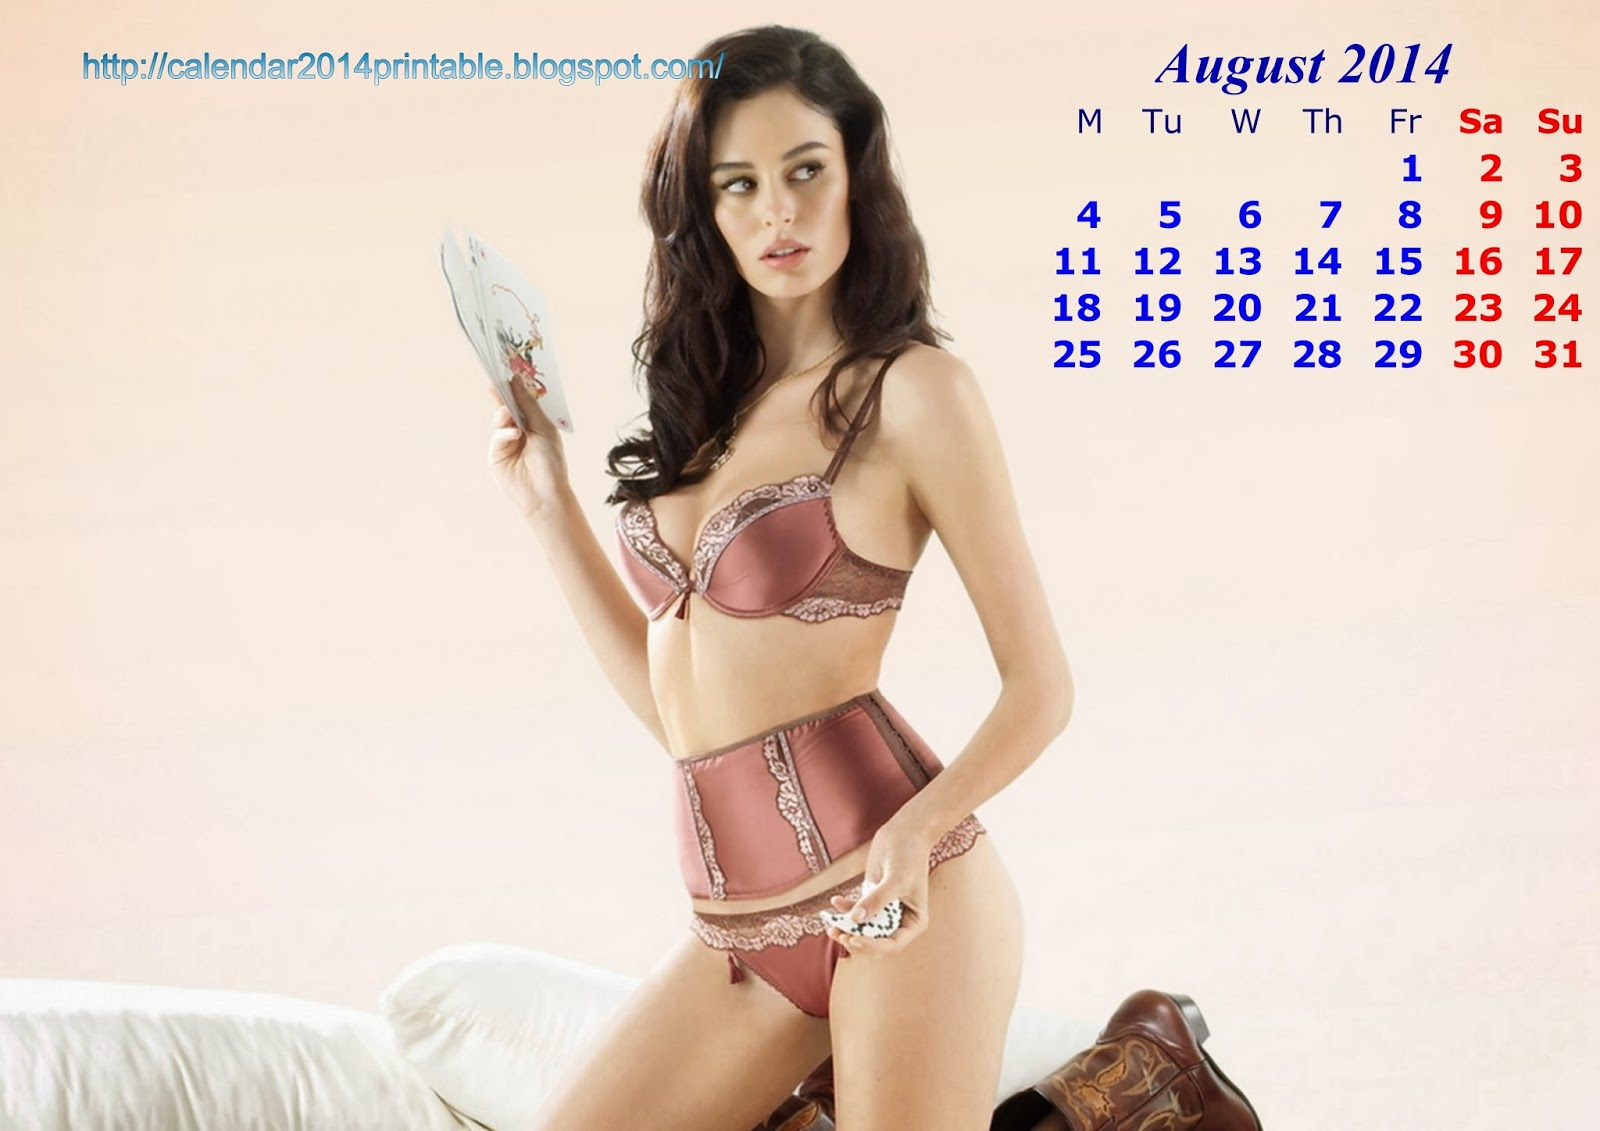 Calendar - INDIA New England News